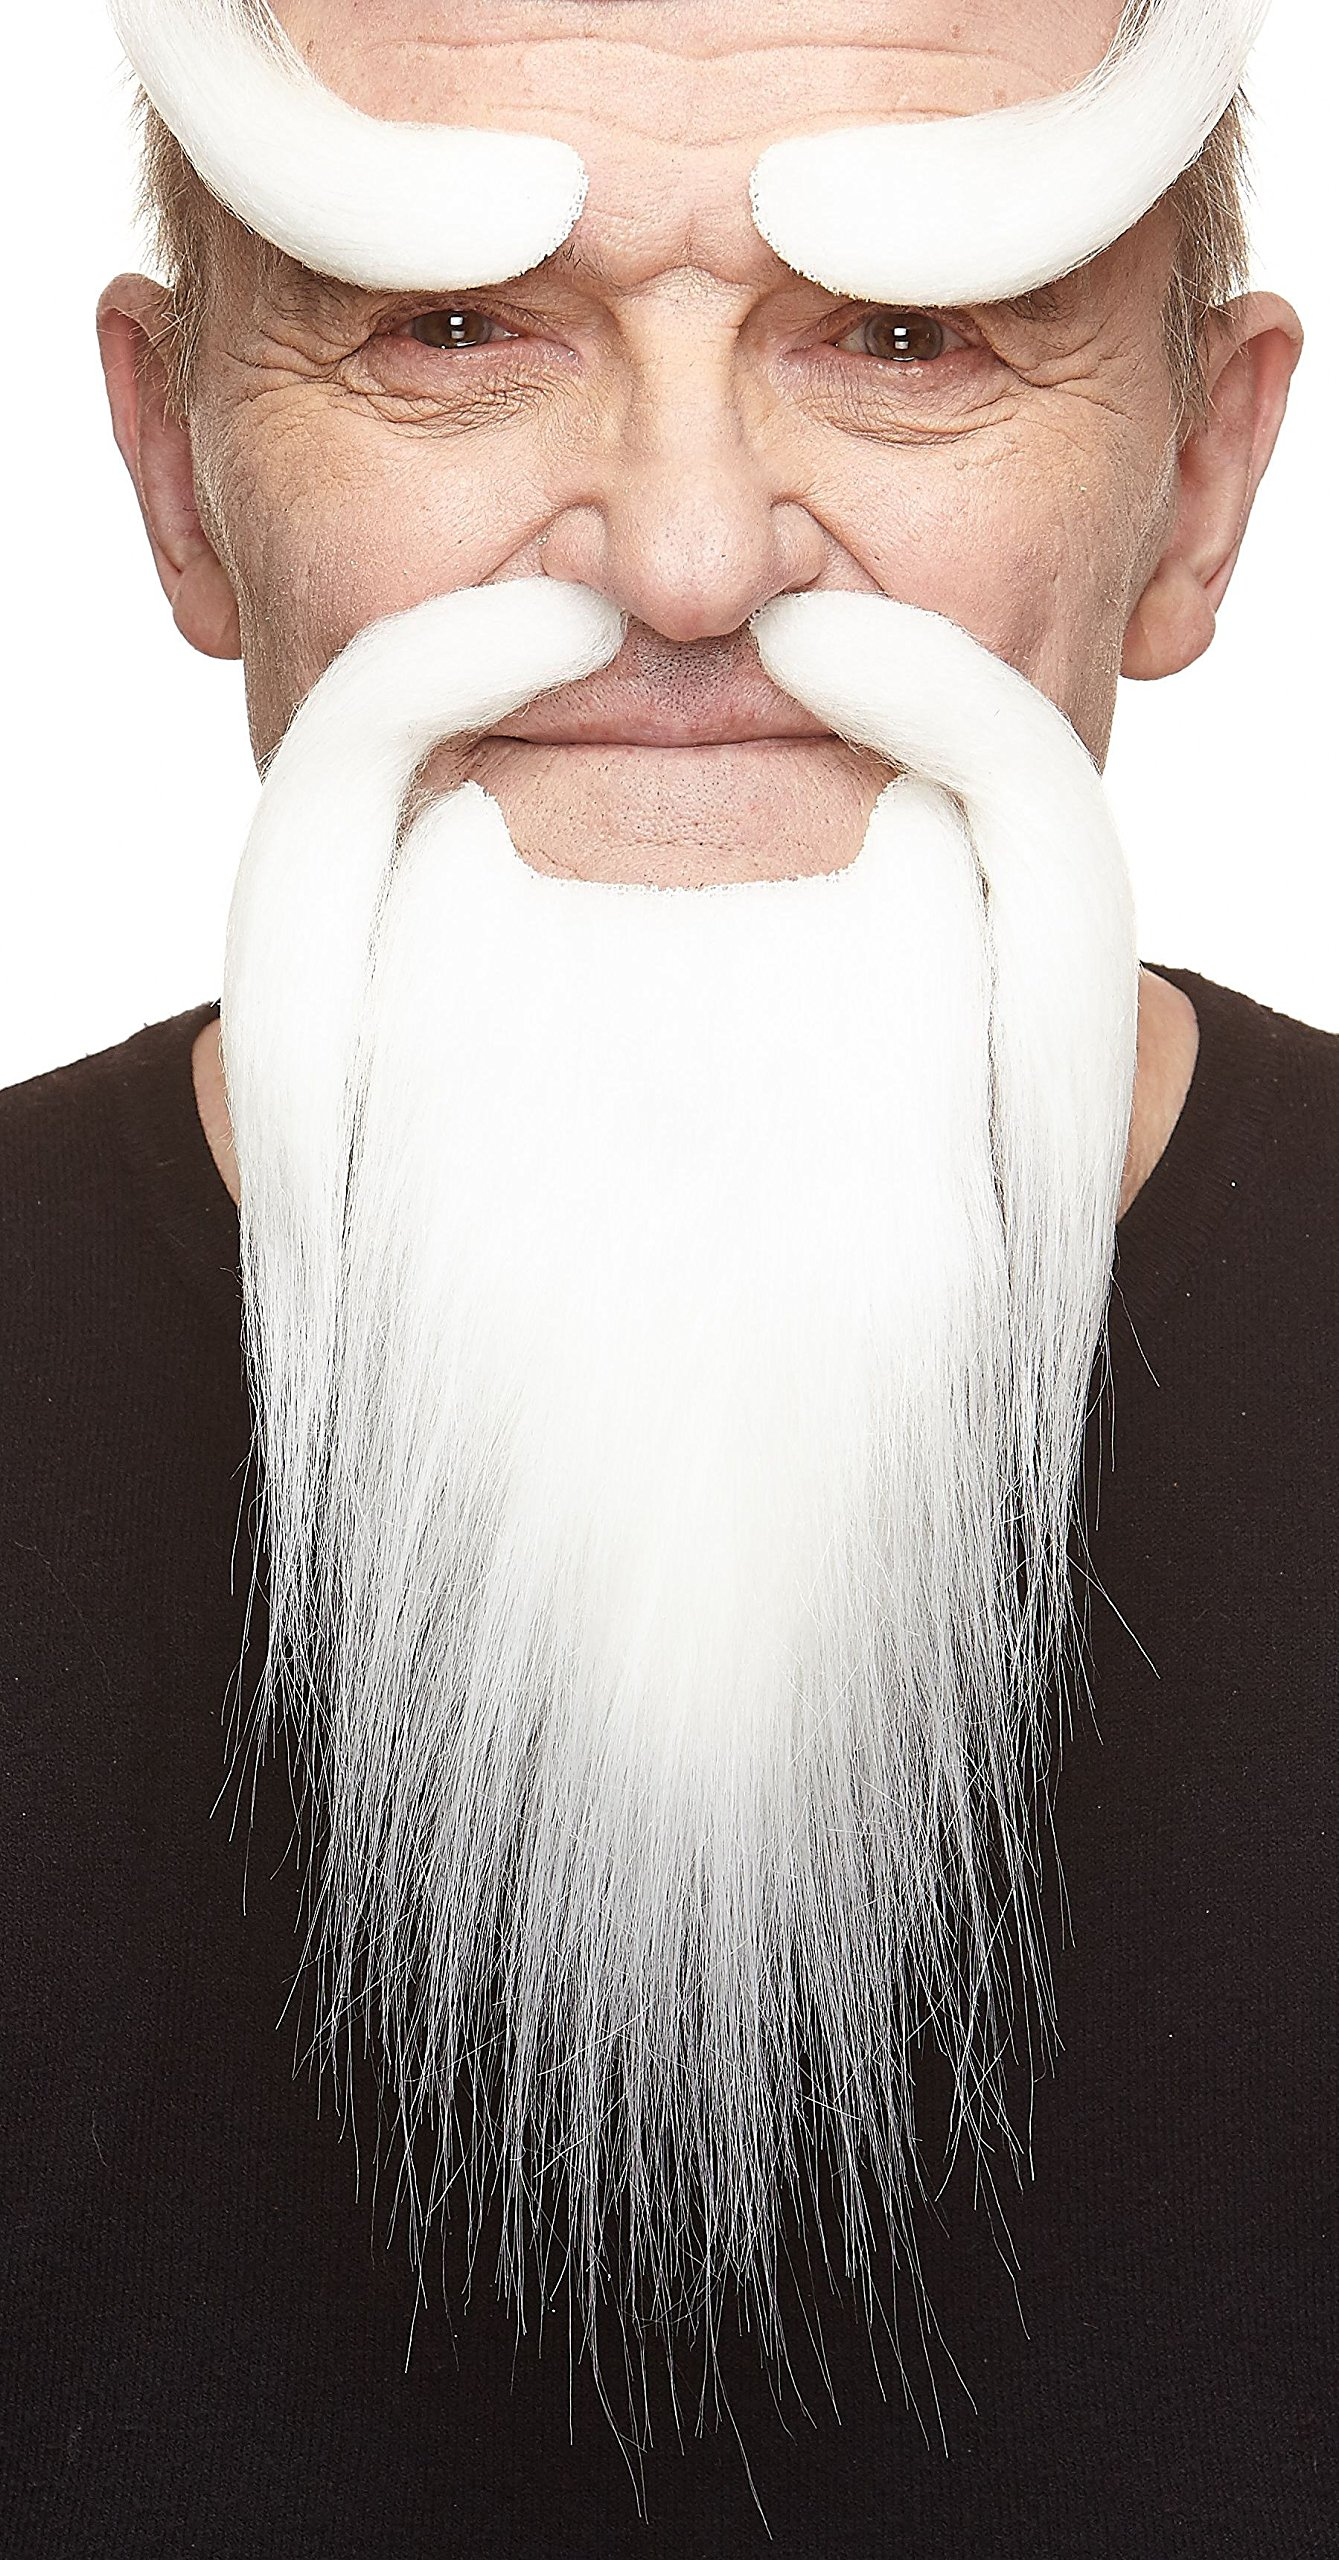 Mustaches Self Adhesive, Novelty, Fake Shaolin Monk Beard, and Eyebrows, White Color